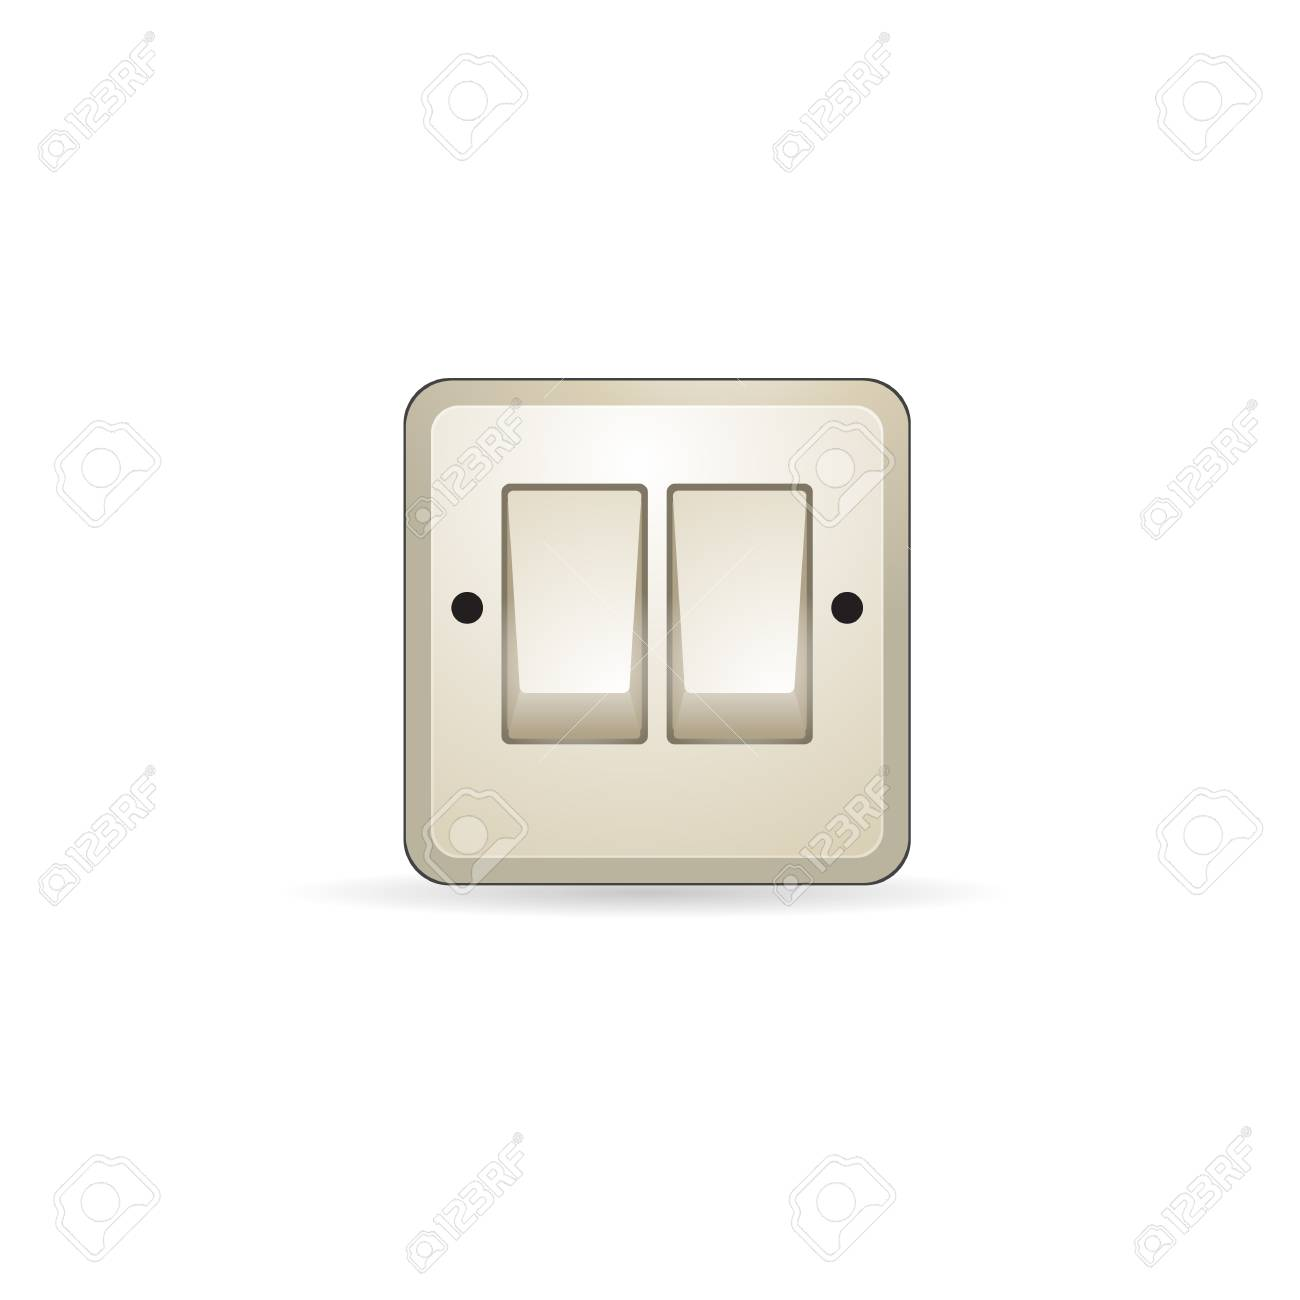 Electrical Switch Icon In Color On Off Button Light Lamp